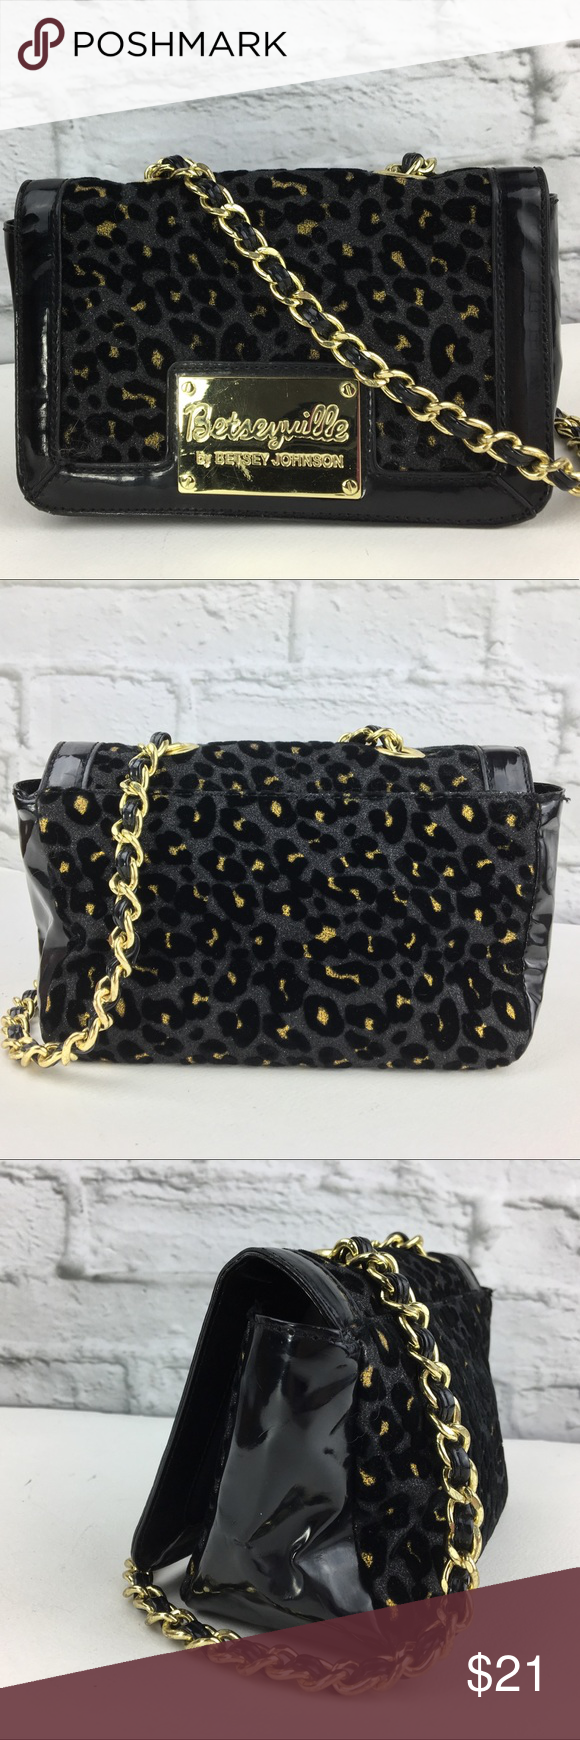 d9d55868160e Betsey Johnson bag leopard print chain strap small Betsey Johnson bag  leopard print chain strap small